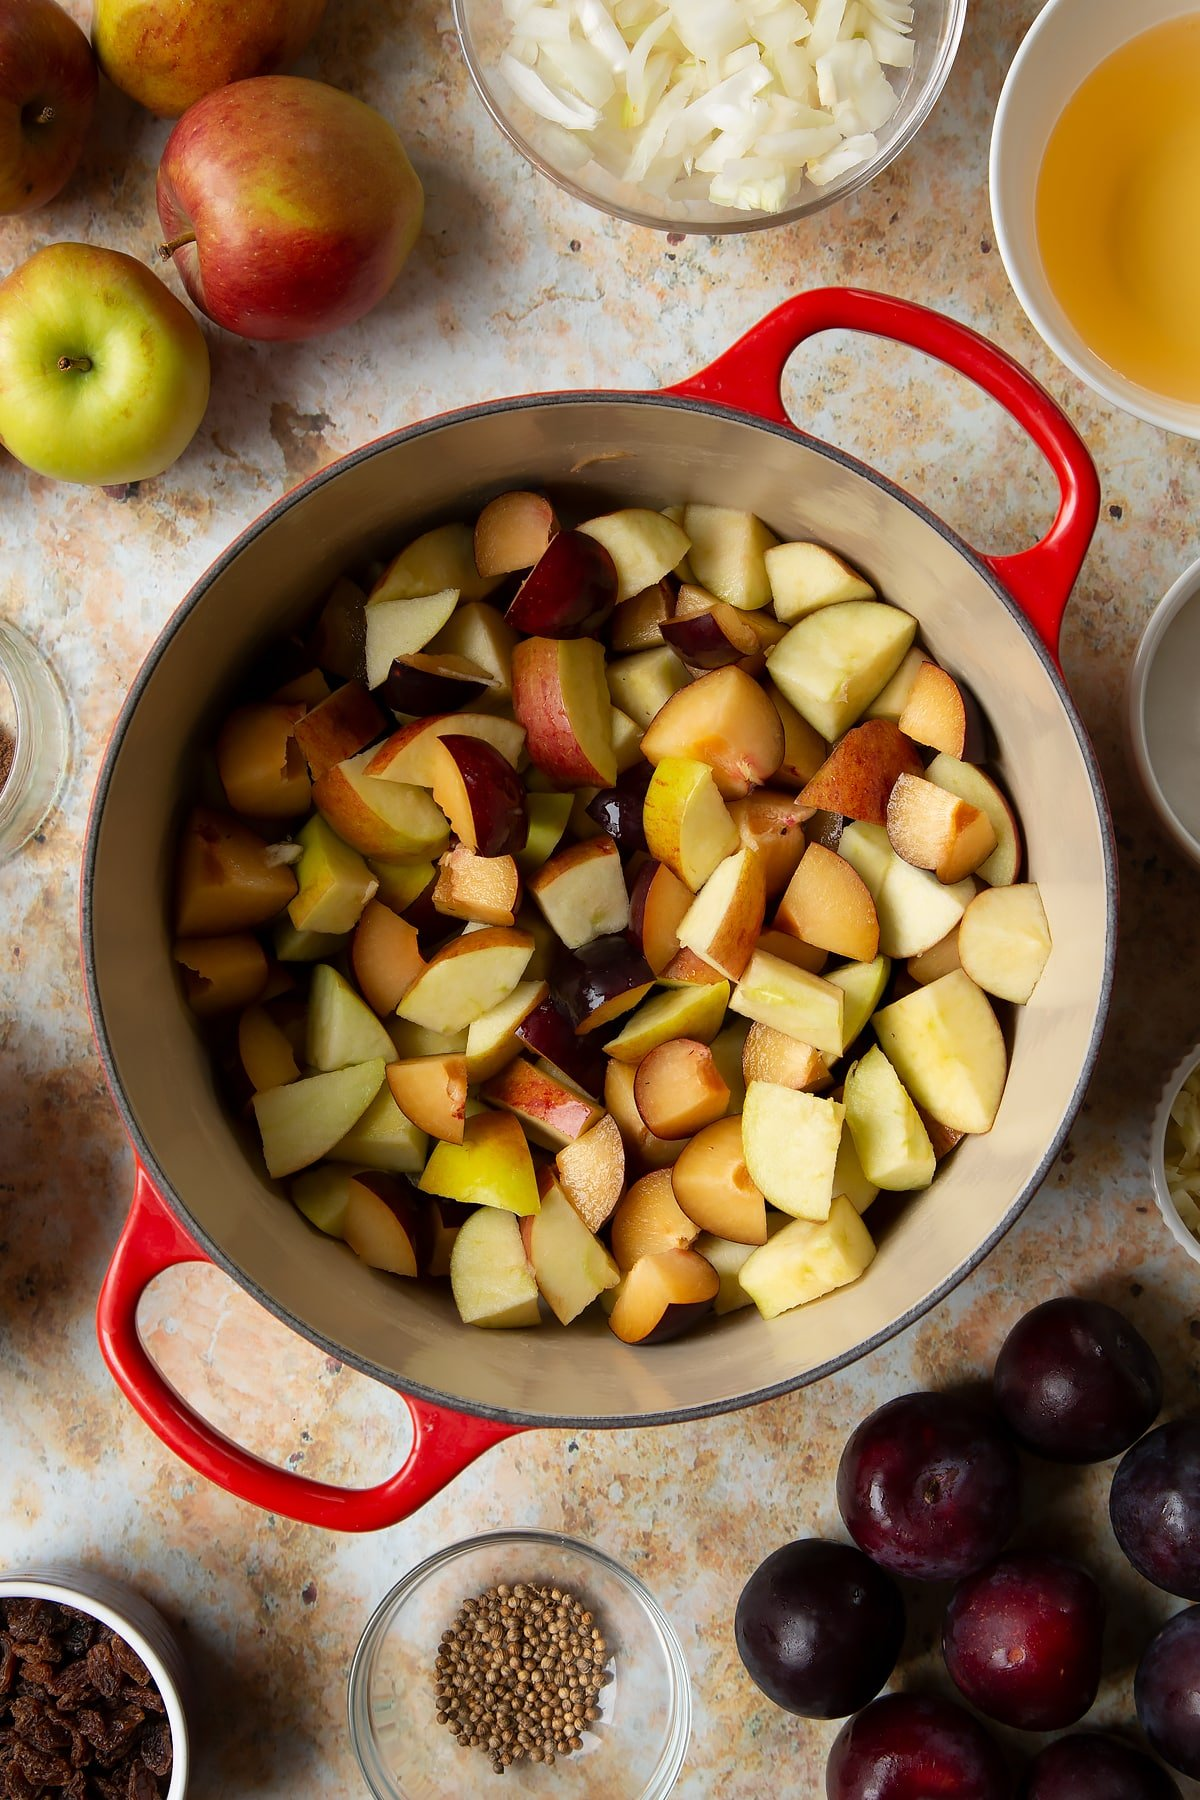 Chopped plums and apples in a large pan. Ingredients to make a fruit chutney recipe surround the pan.